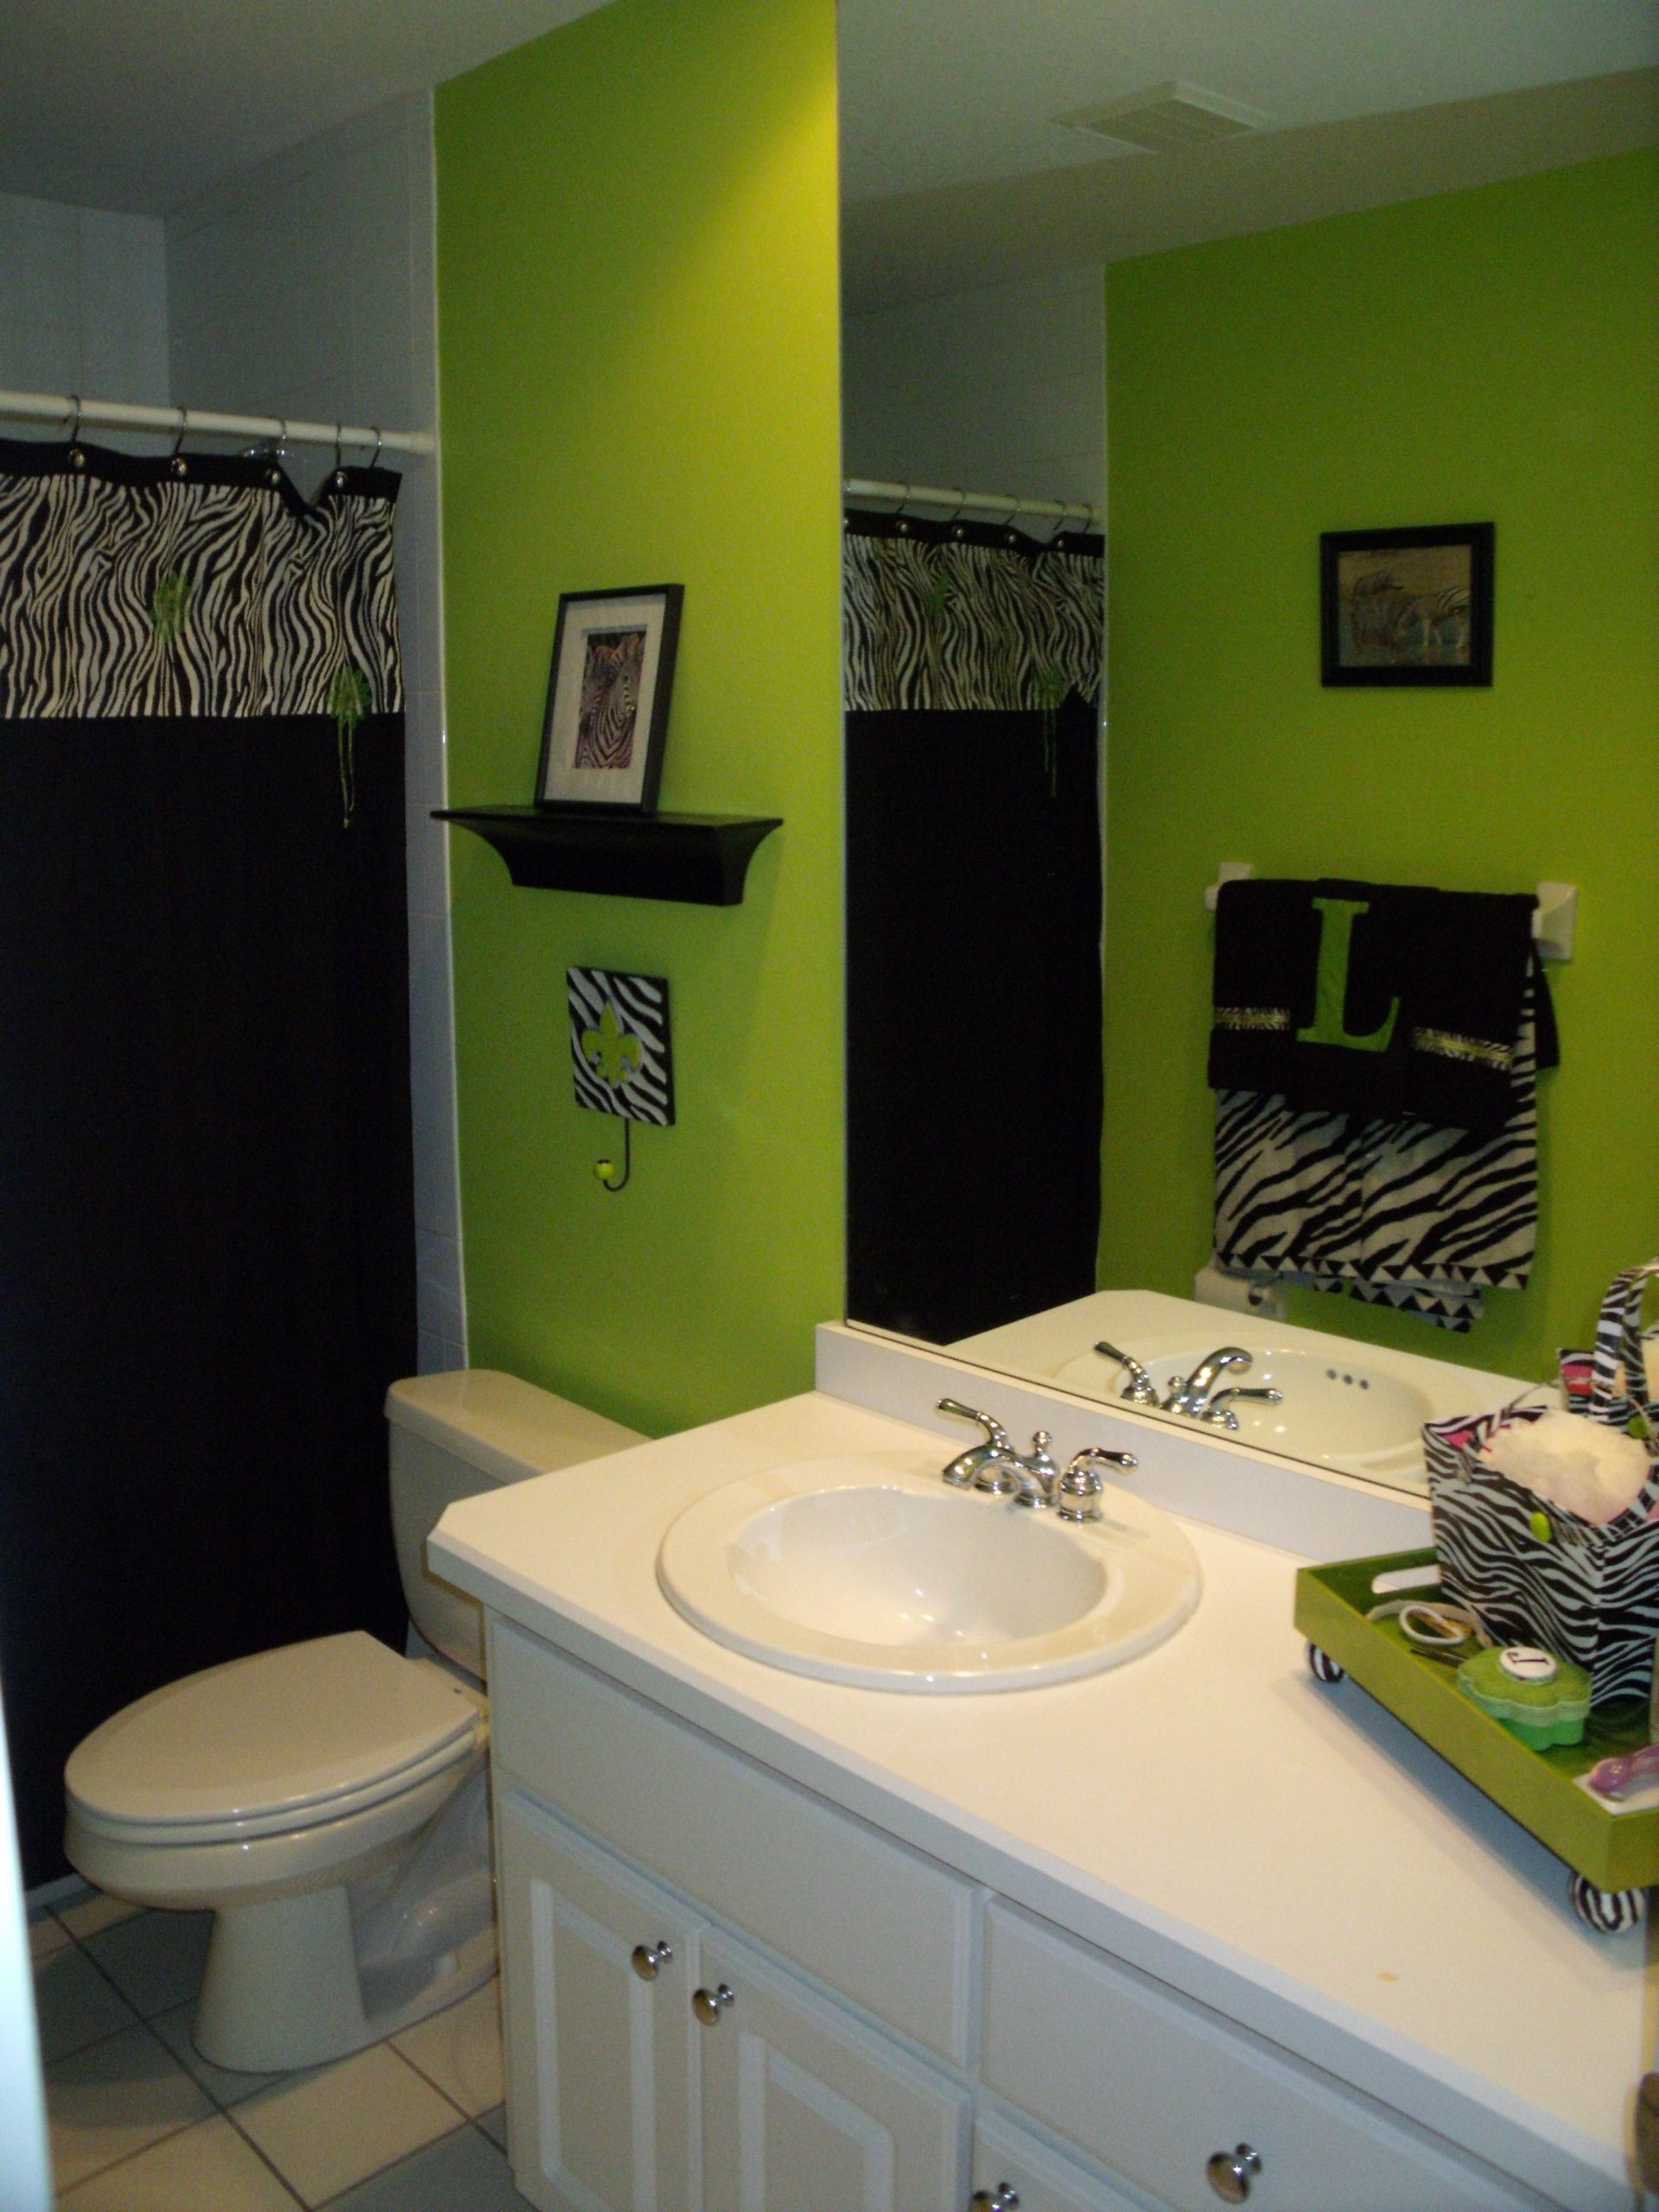 I Kind Of Love This Bathroom, And The Fact That The Towel Zebra Bathroom Decorating